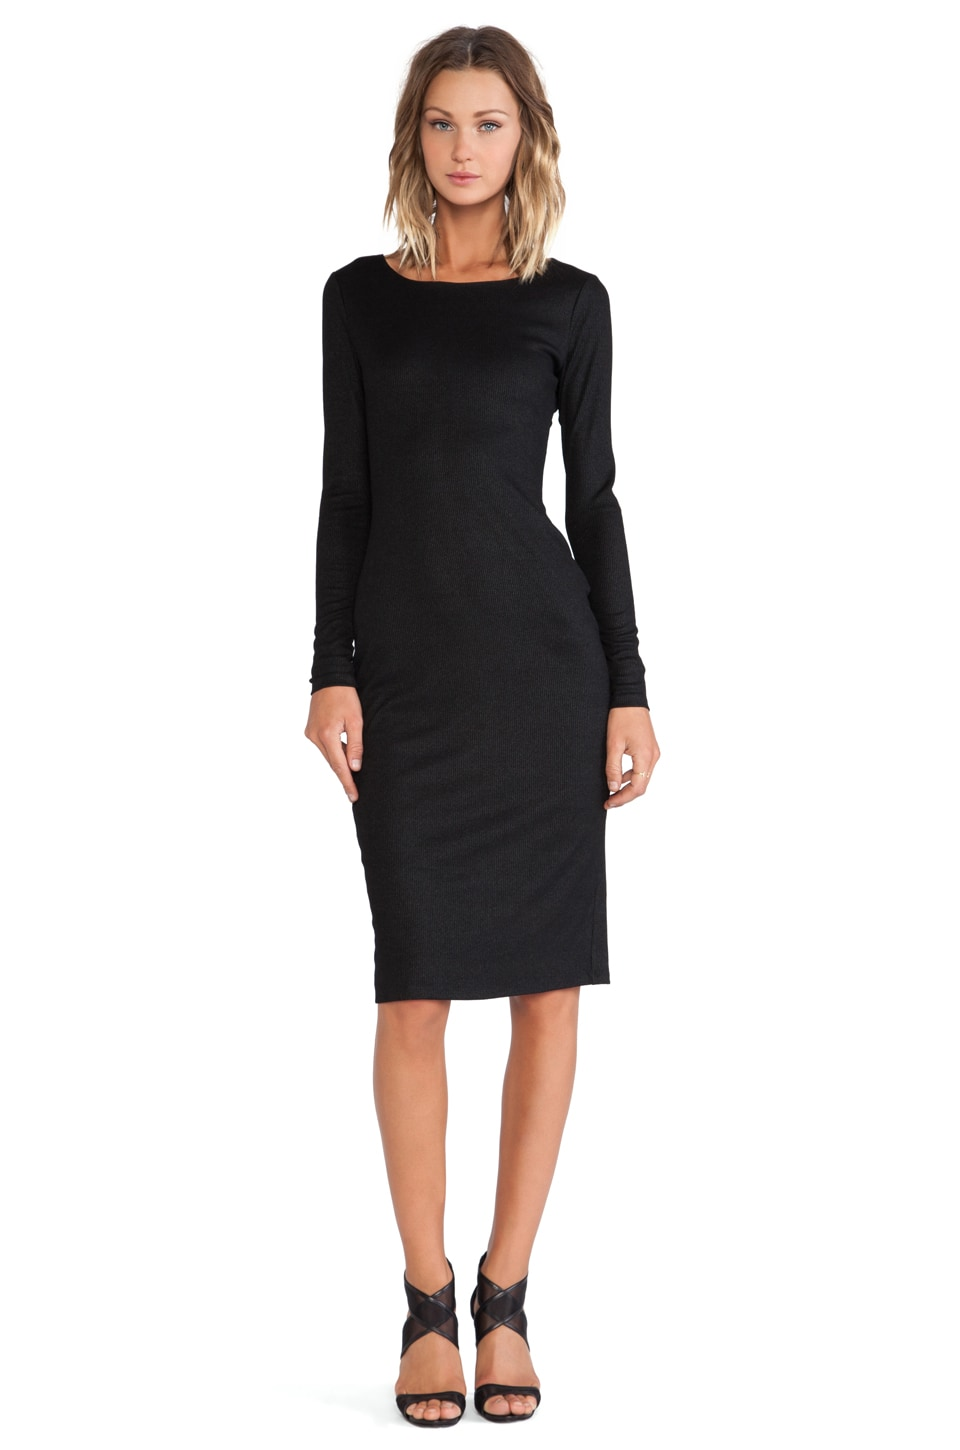 Bobi BLACK Ribbed Long Sleeve Midi Dress in Black